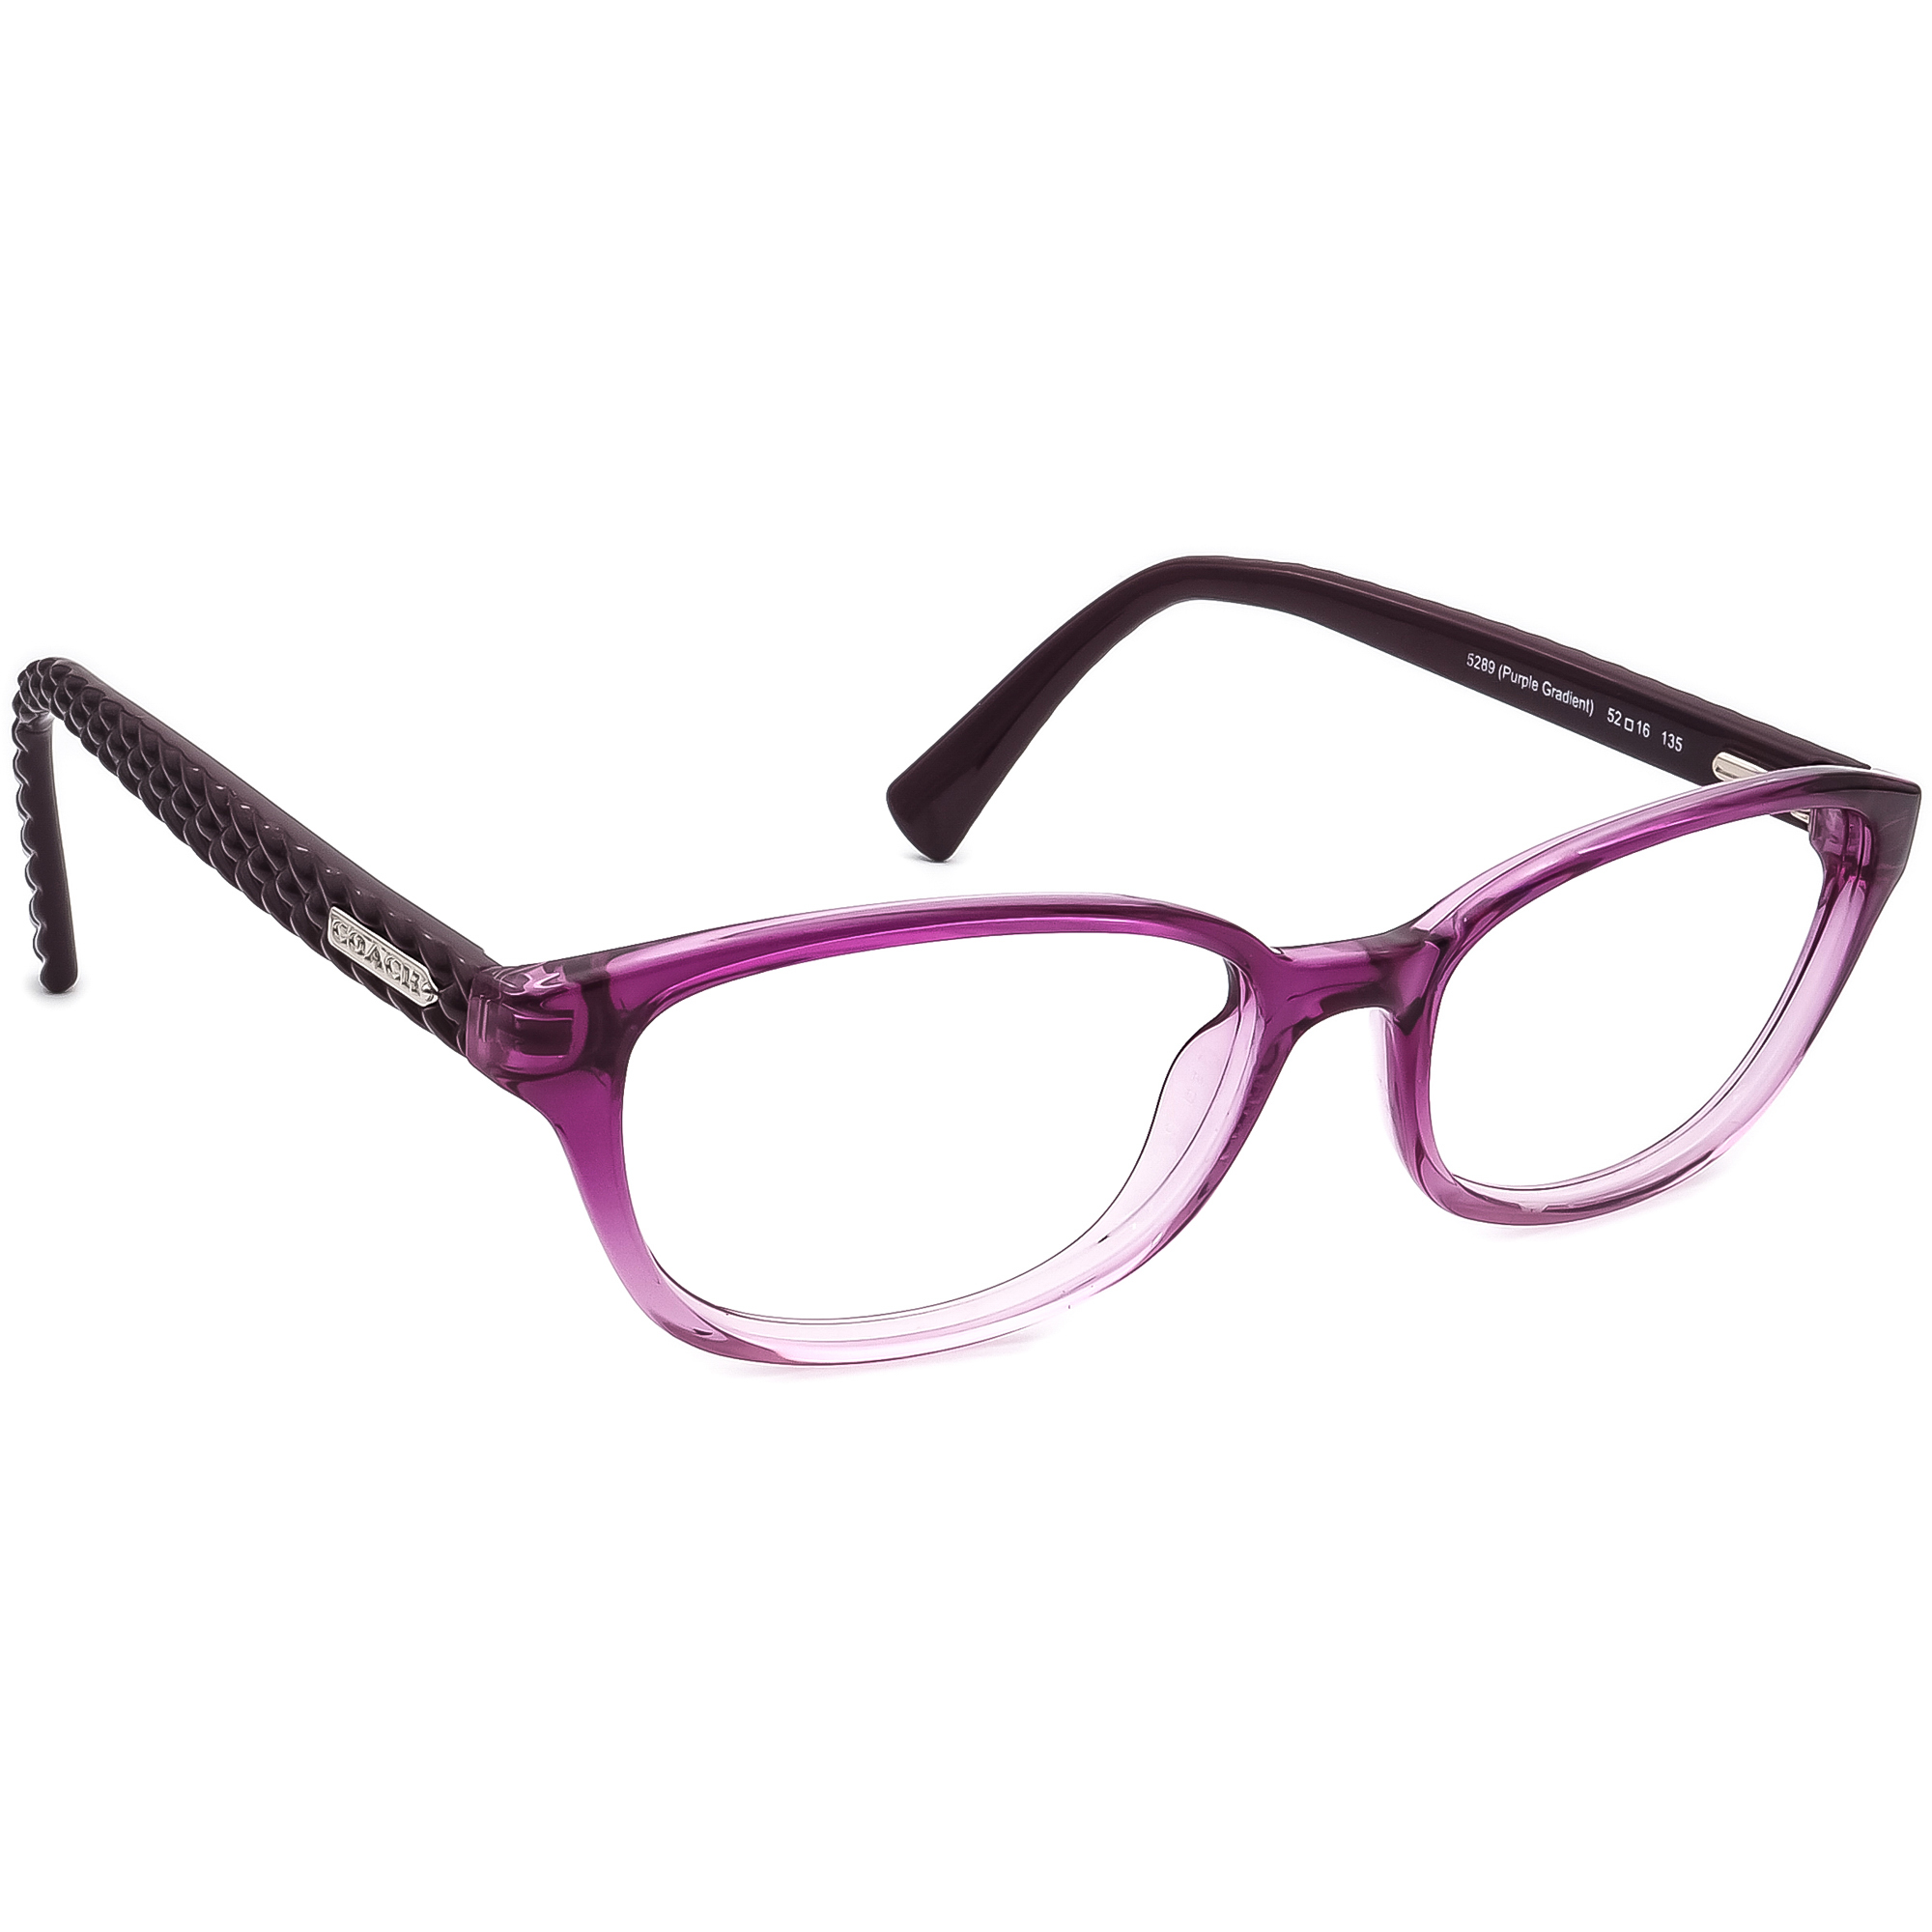 Coach HC 6067 5289 Eyeglasses